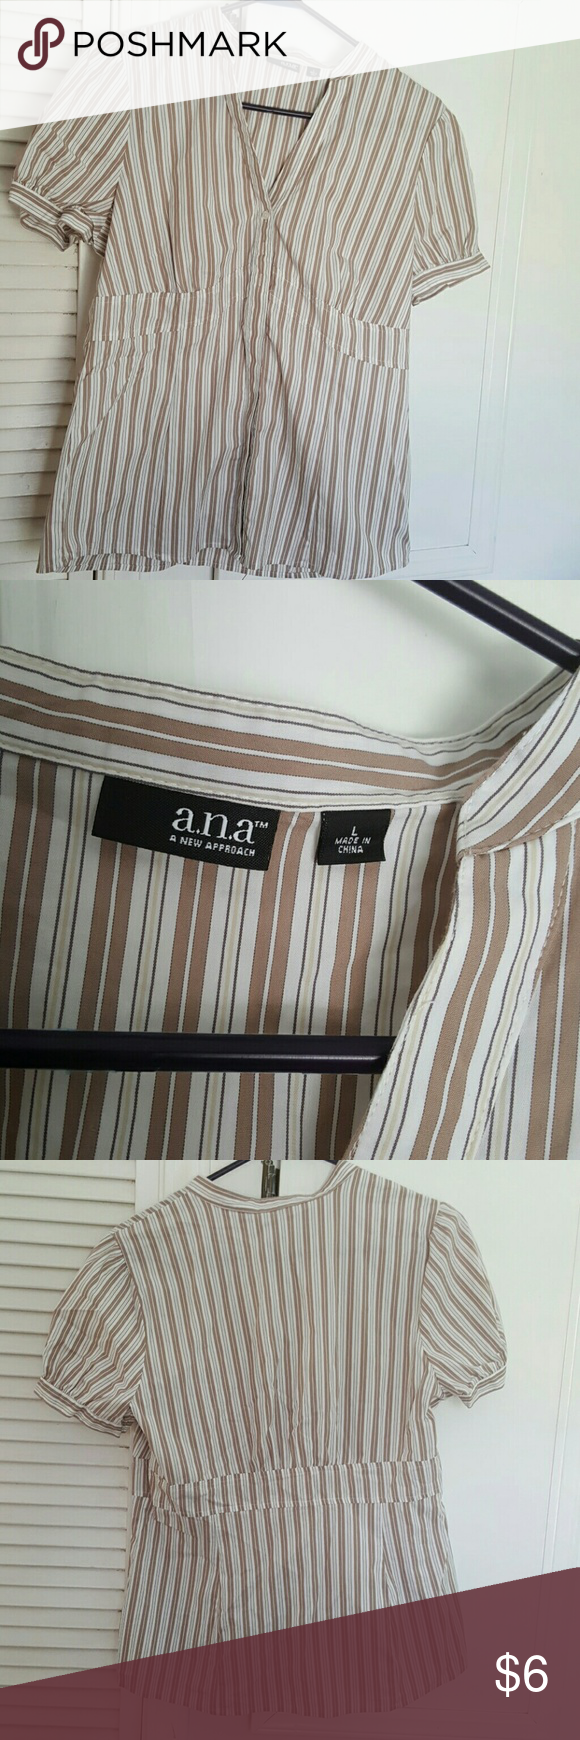 Size Large a.n.a top EUC SIZE LARGE A.N.A. BUTTON UP TOP a.n.a Tops Button Down Shirts